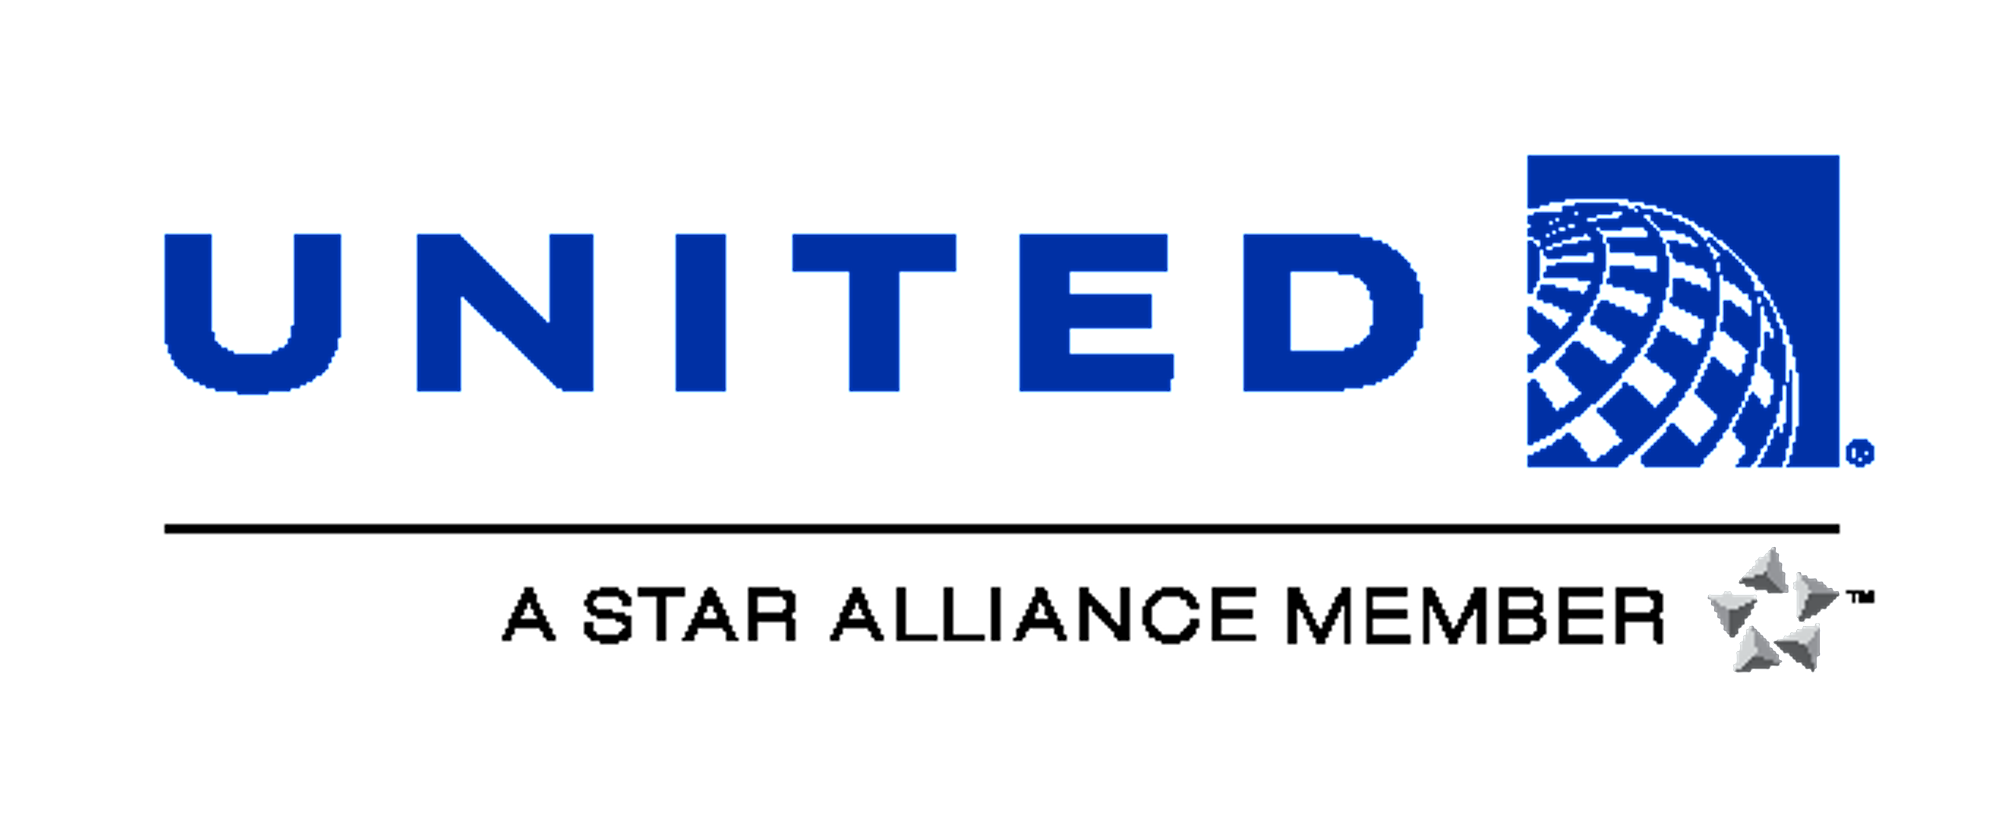 United Airlines Resuming Service Between San Francisco And Pluspng.com  - United Airlines Logo PNG